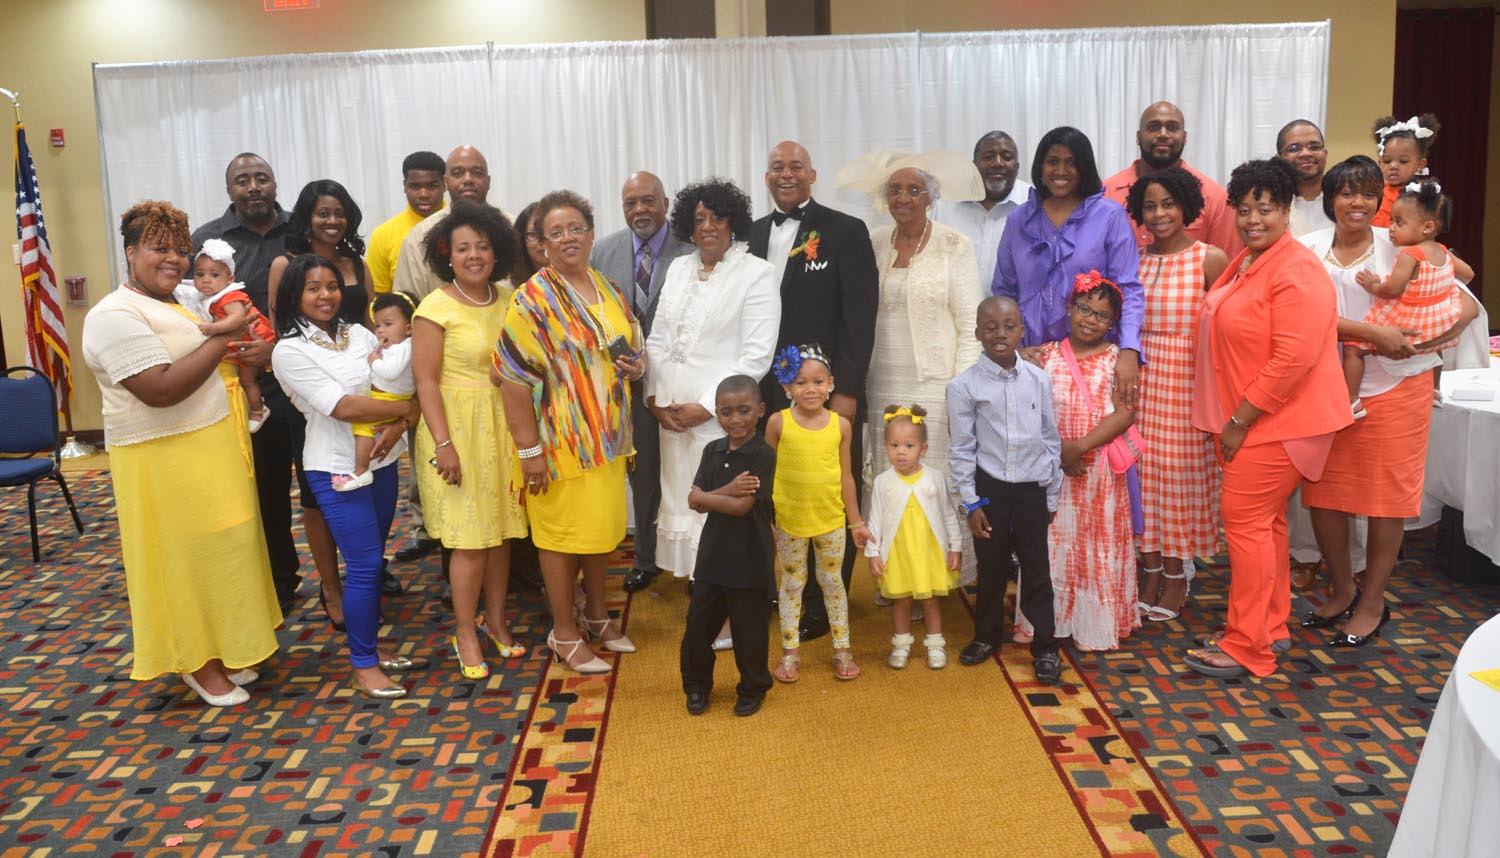 The Beautiful Family including parents and offsprings grandchildren and extended family members.